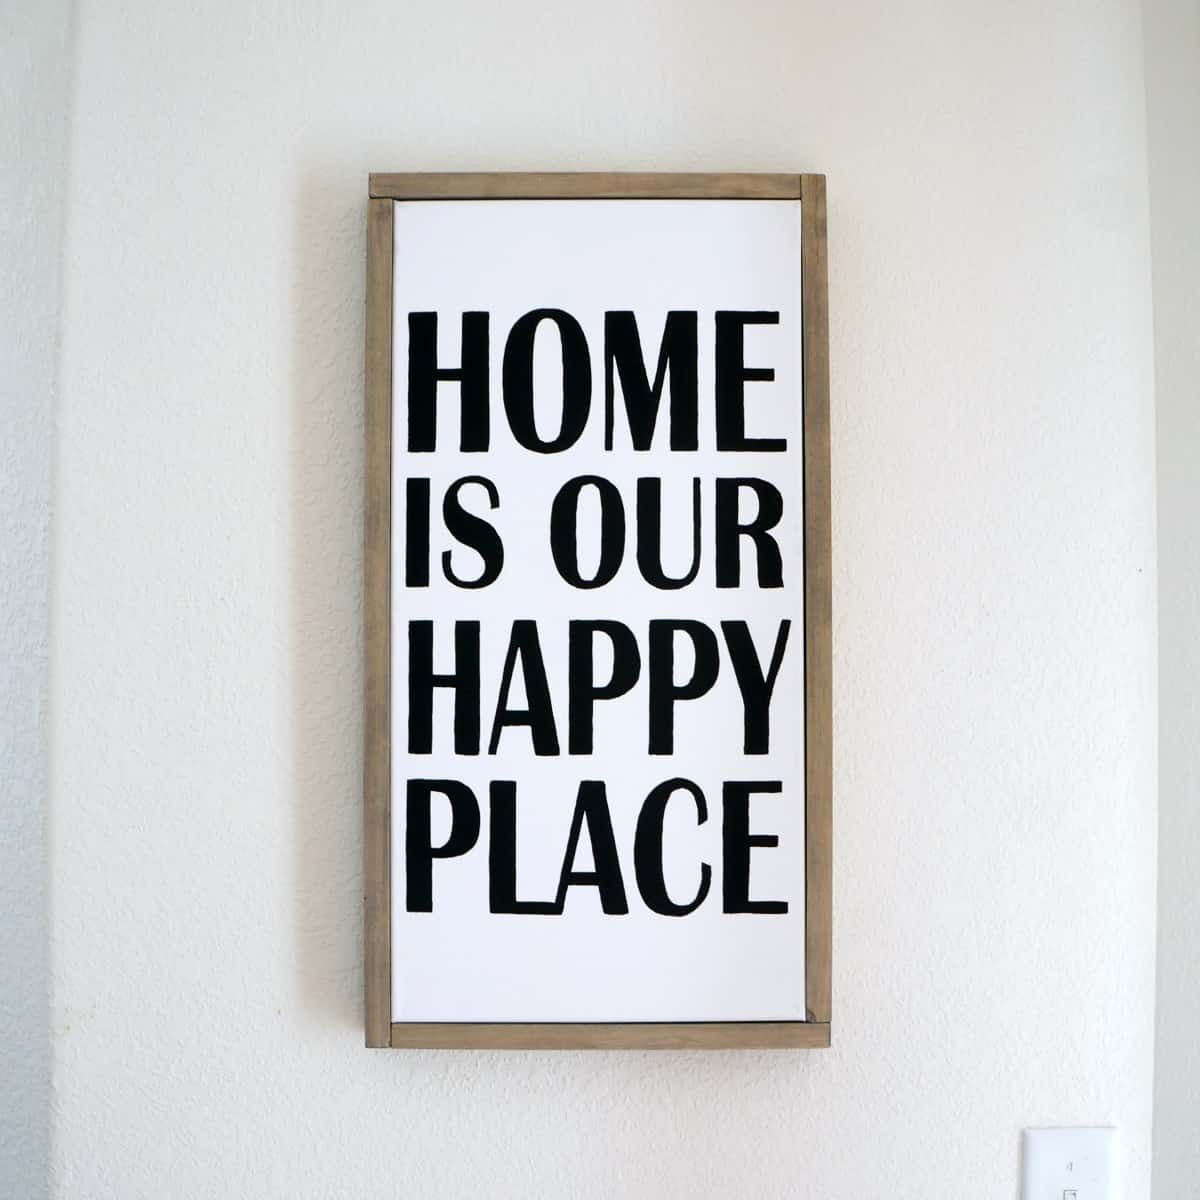 Home is our happy place DIY framed canvas art